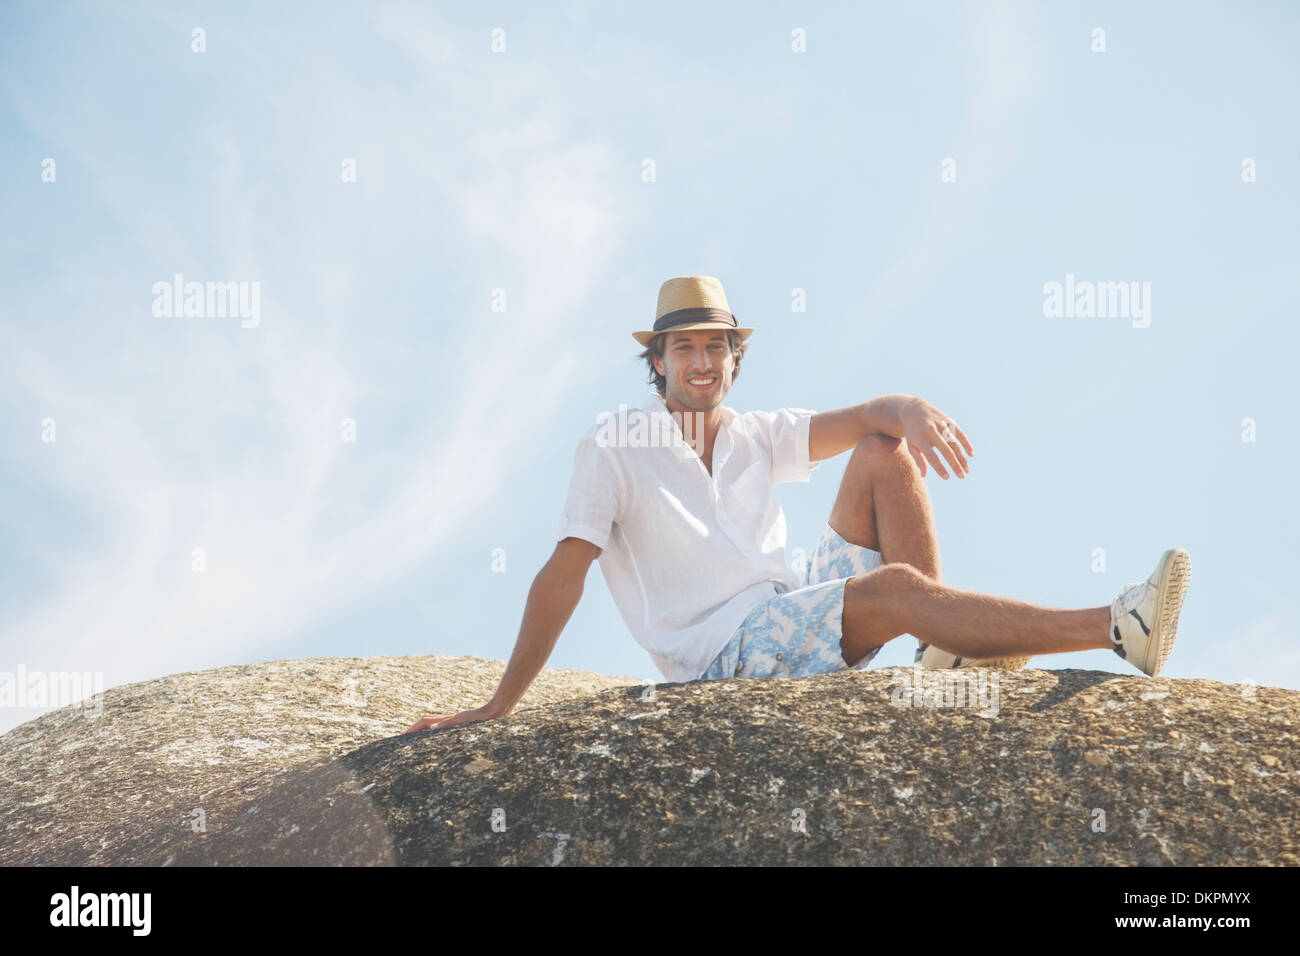 Man sitting on rock formation - Stock Image